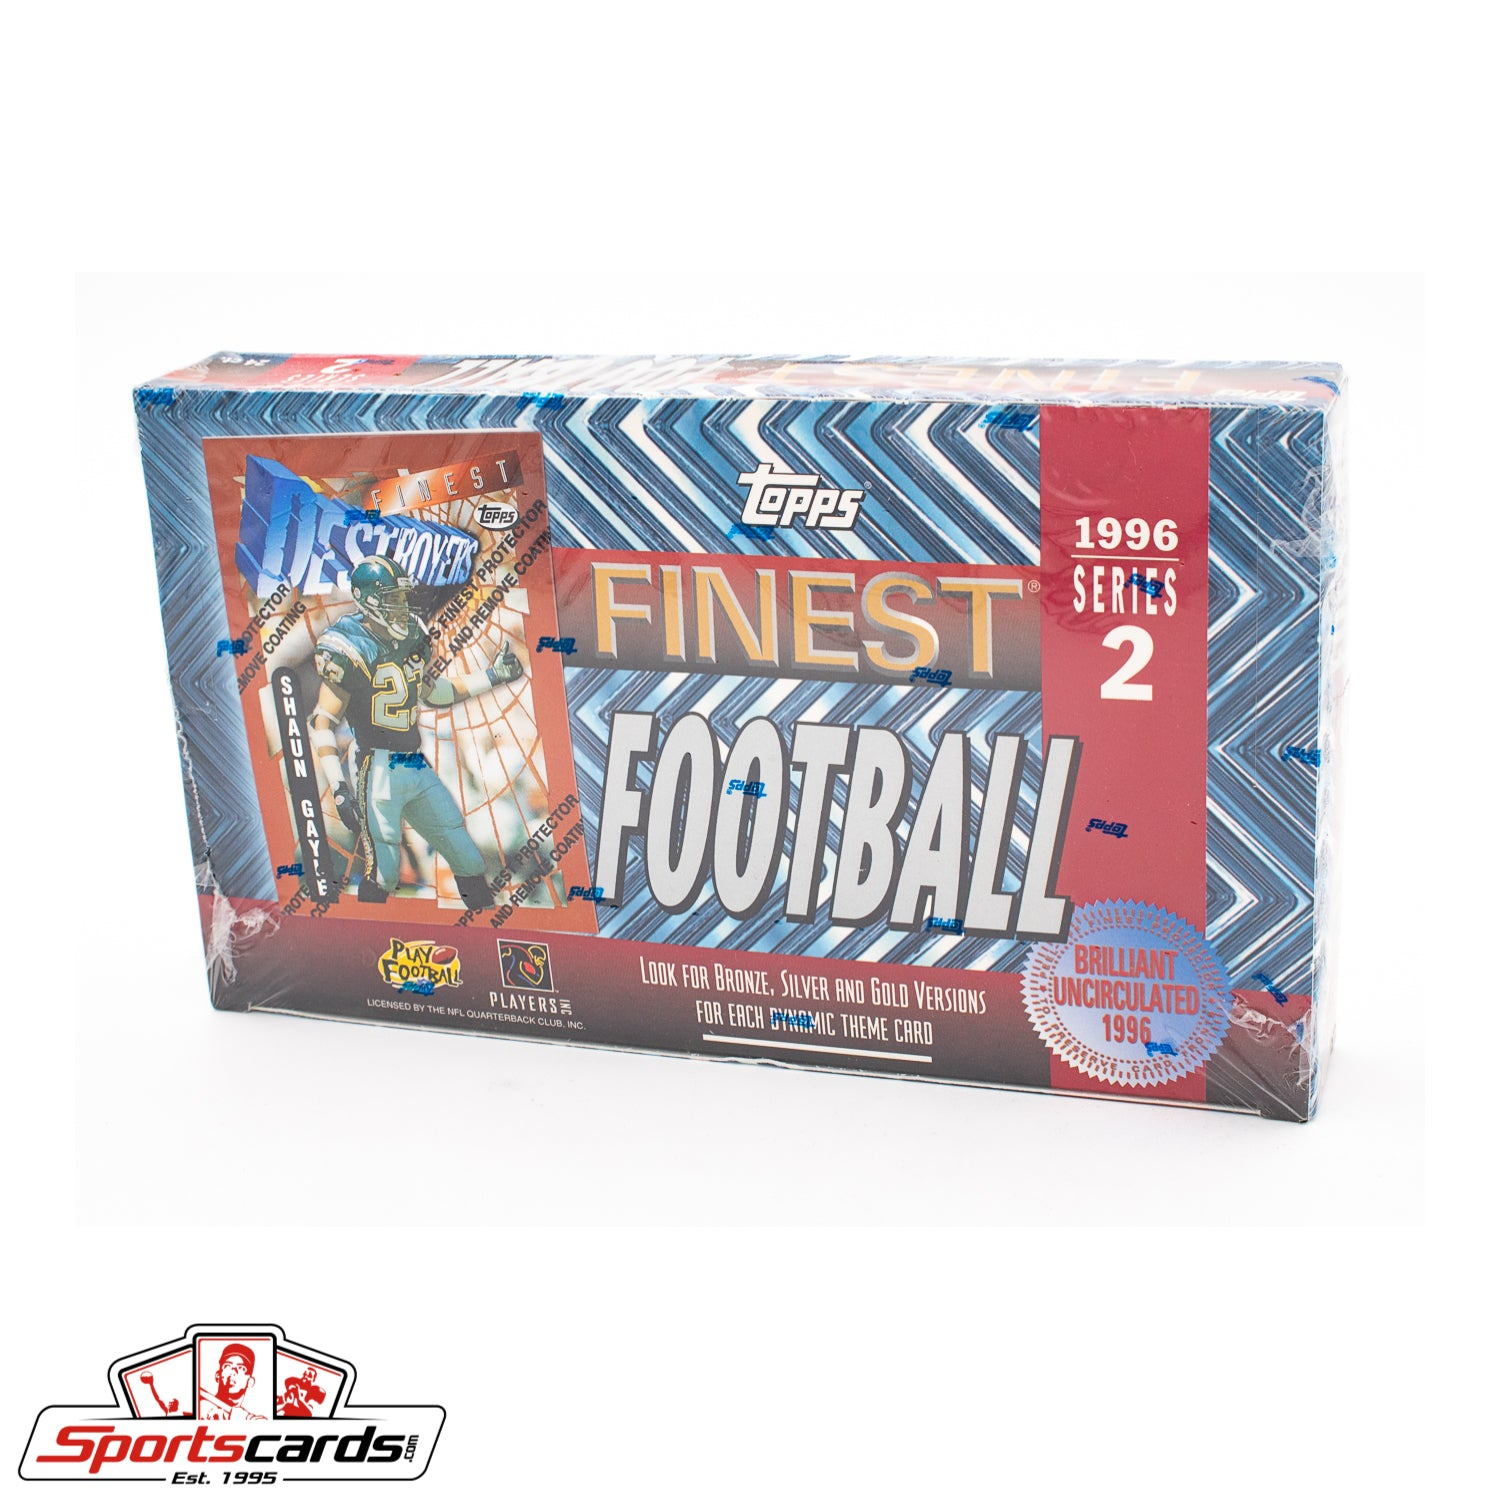 1996 Topps Finest Football Series 2 Factory Sealed Box